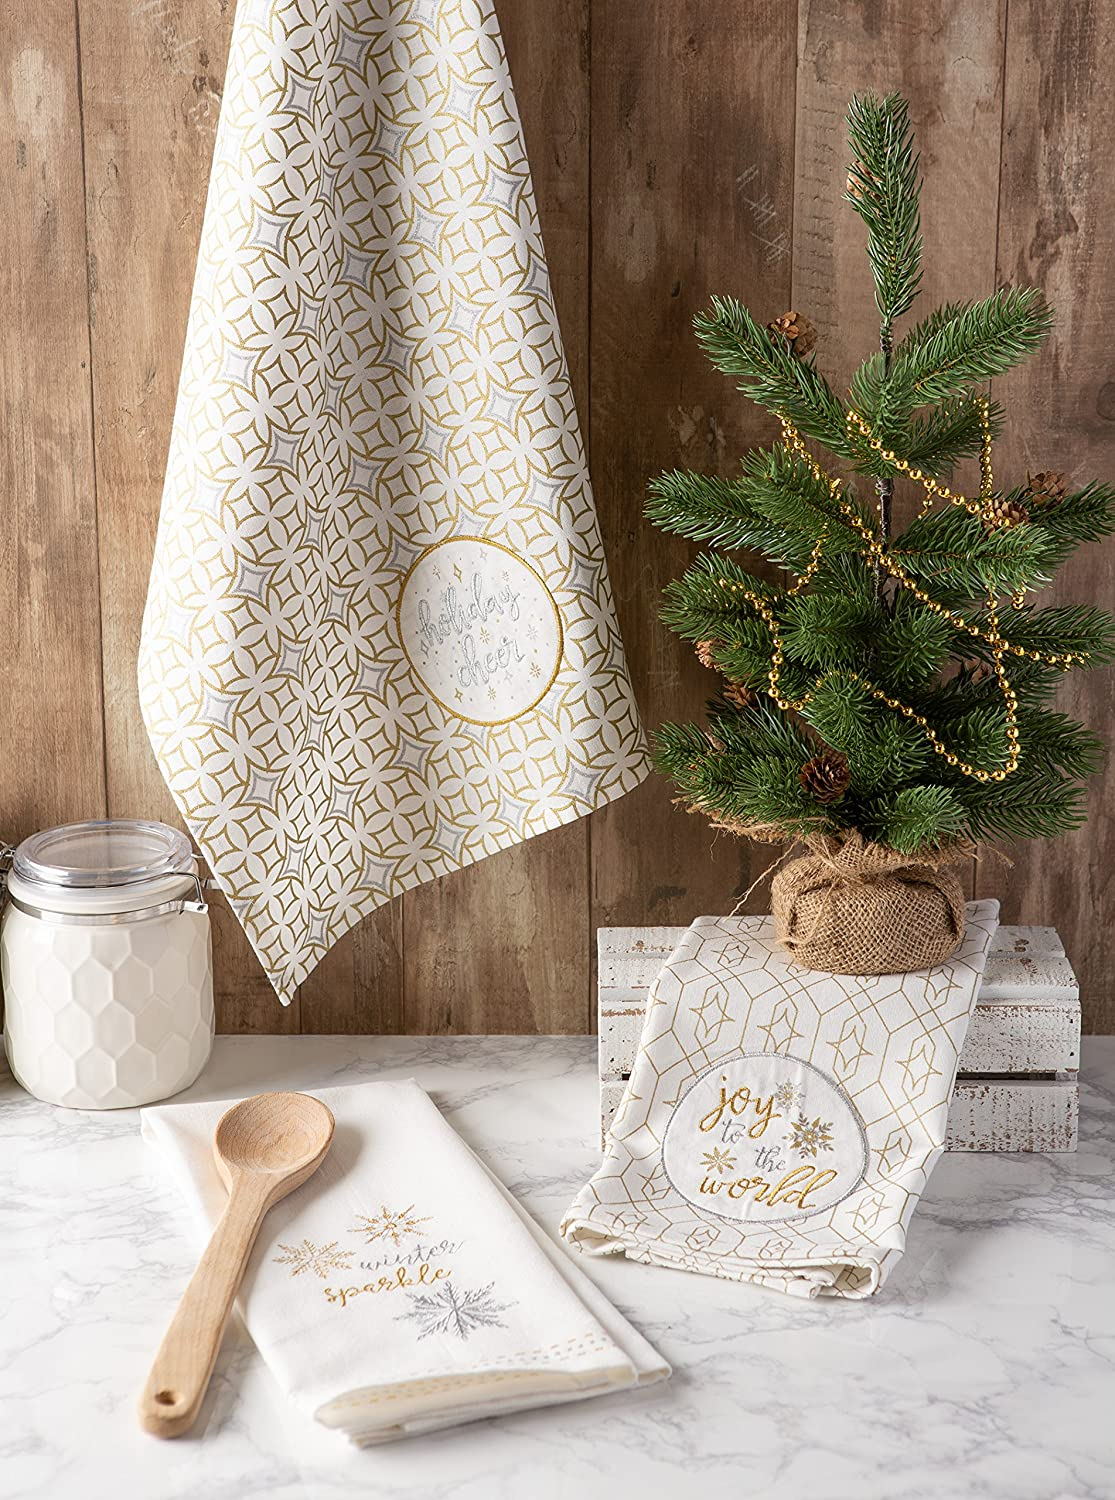 3 Pack Jacquard Dishtowel S//3 DII Cotton Christmas Holiday Dish Perfect Home and Kitchen Gifts Winter Jaquard Decorative Oversized Towels